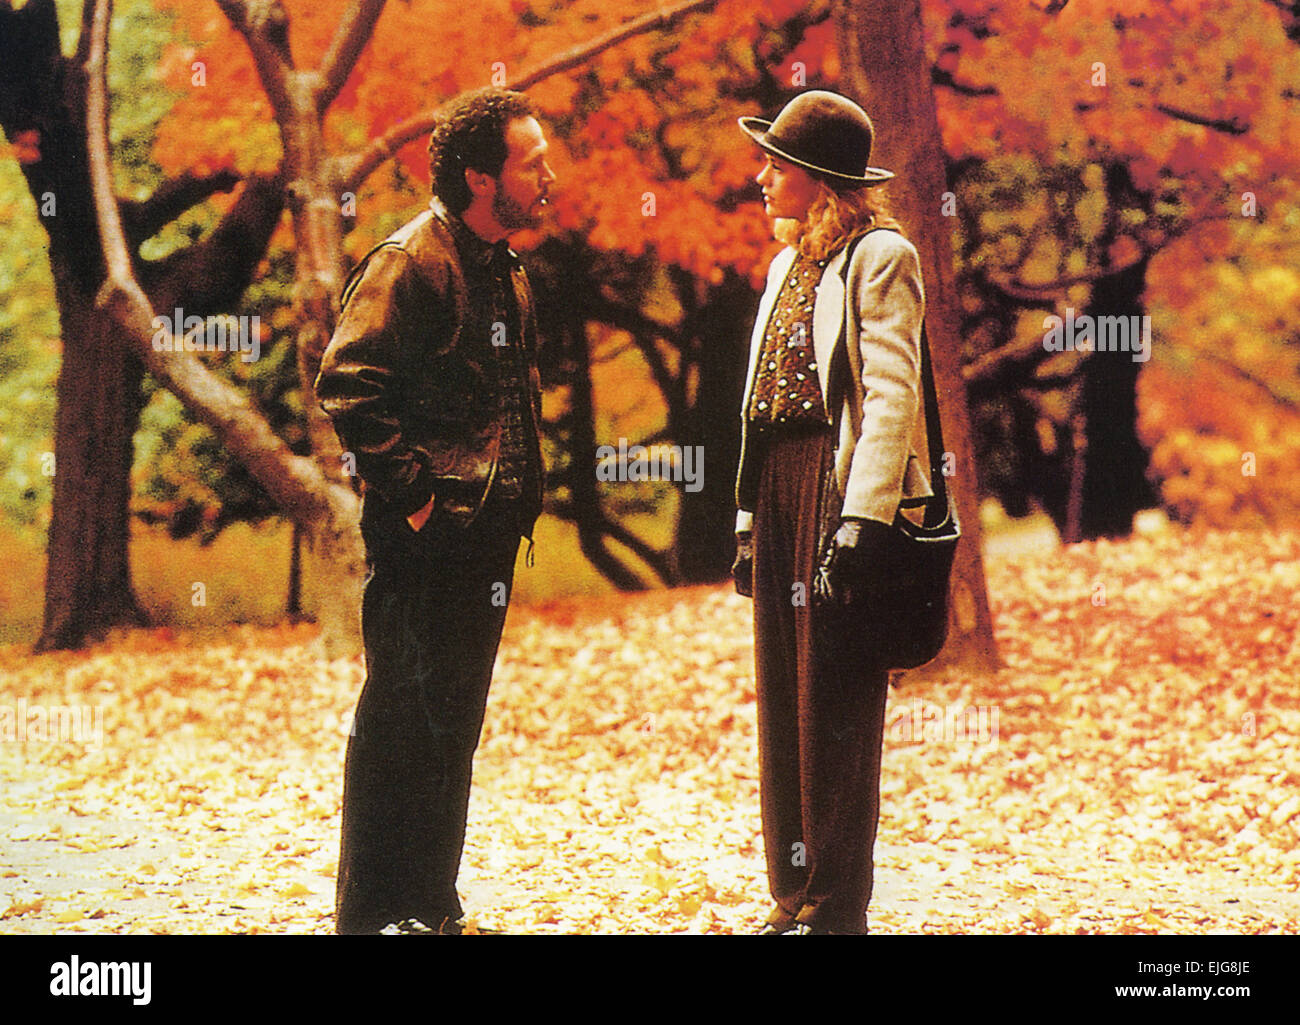 HARRY TI PRESENTO SALLY 1989 Castle Rock film con Meg Ryan e Billy Crystal Immagini Stock